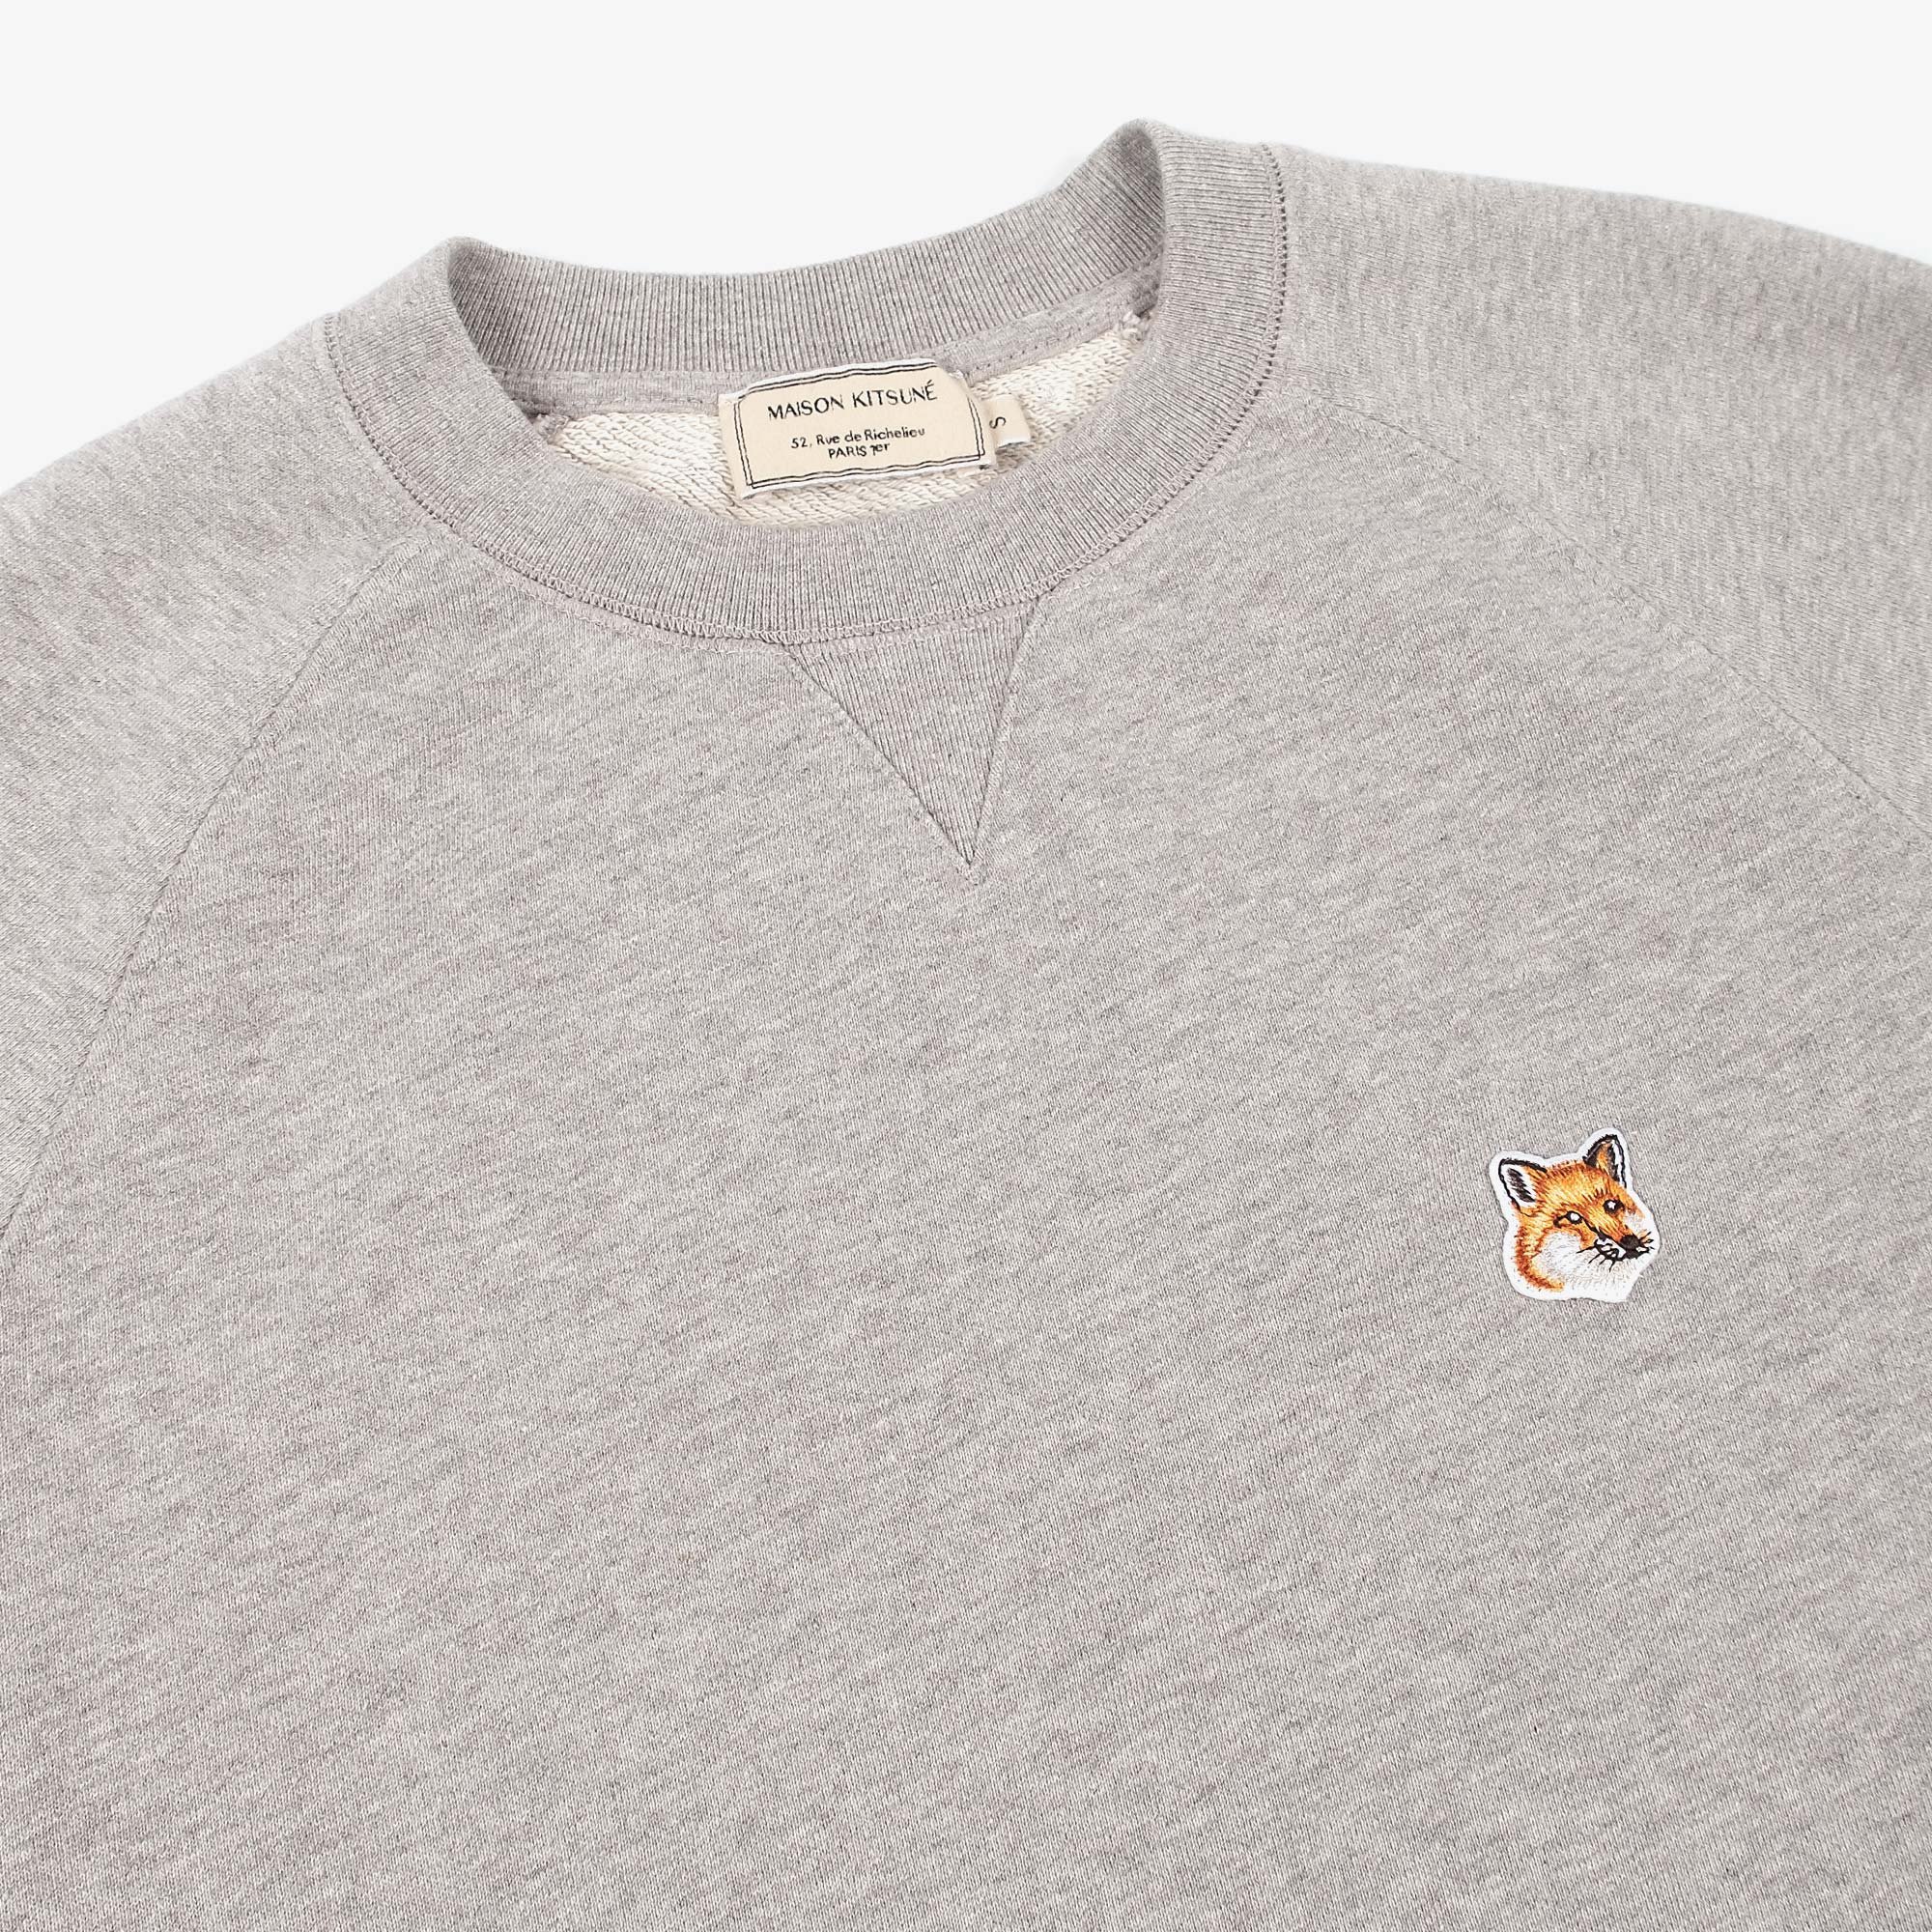 Maison Kitsune Mens Fox Head Patch Sweatshirt - Grey Melange 2